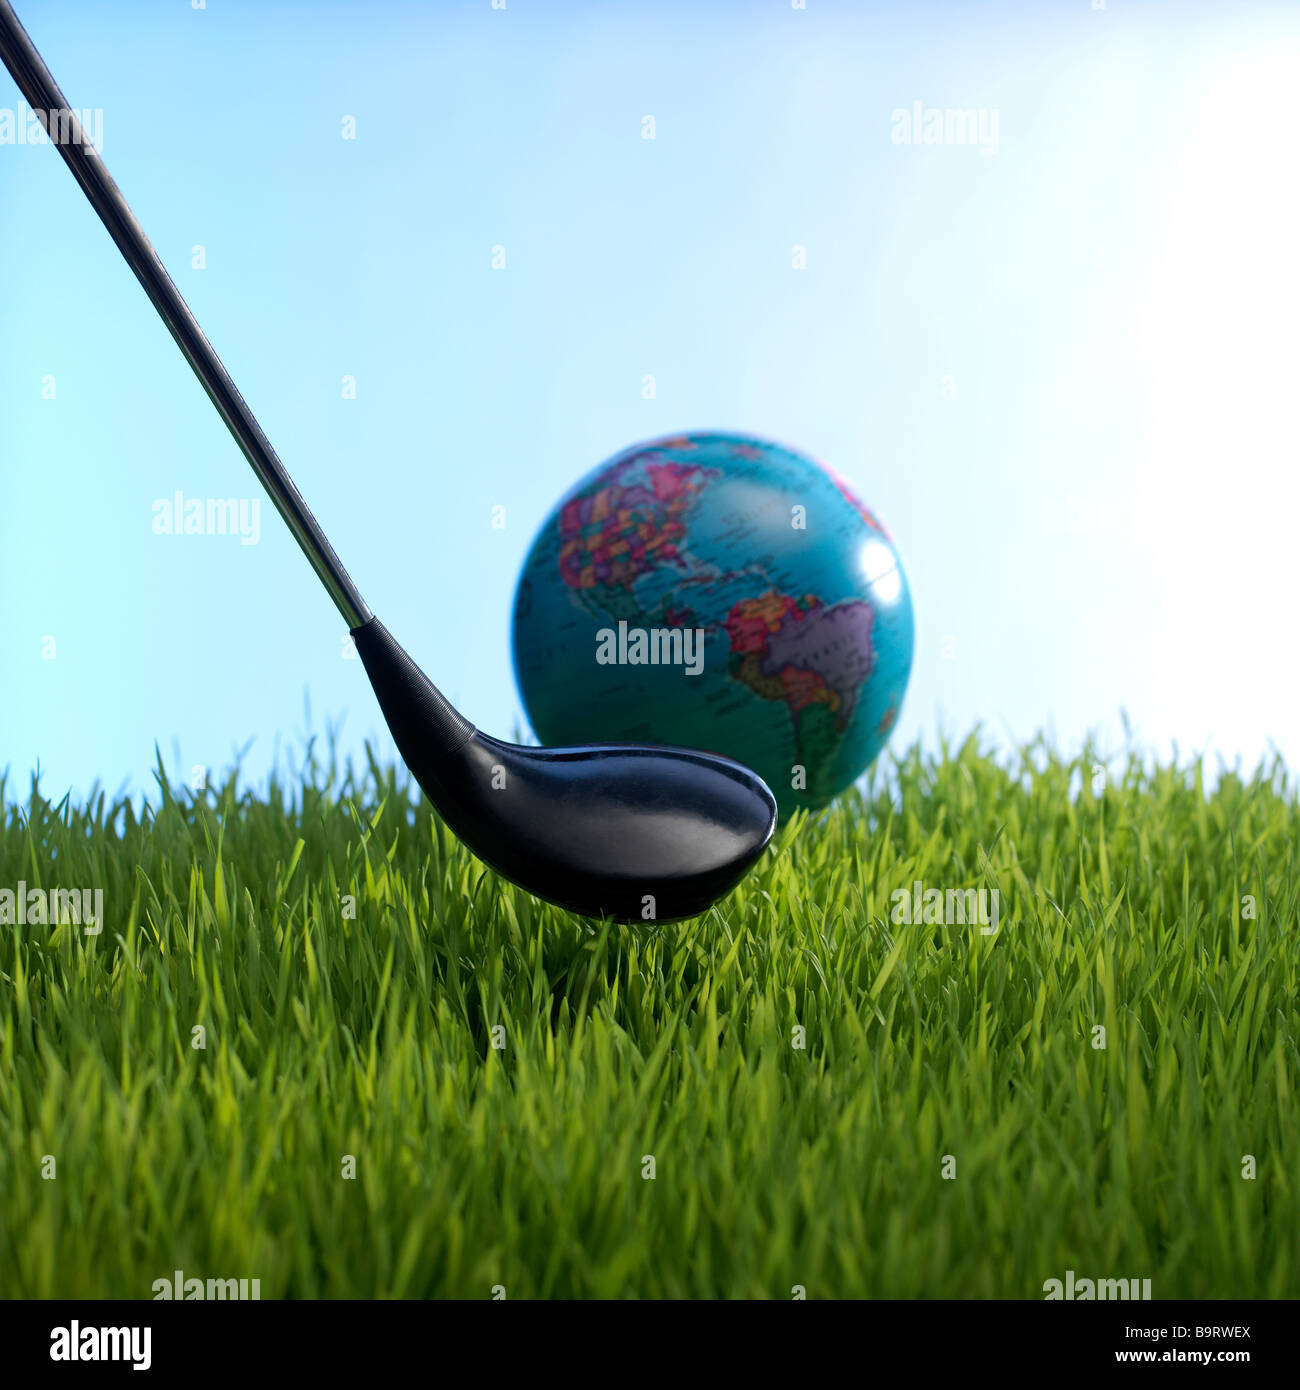 Globe and gold club in grass Photo Stock